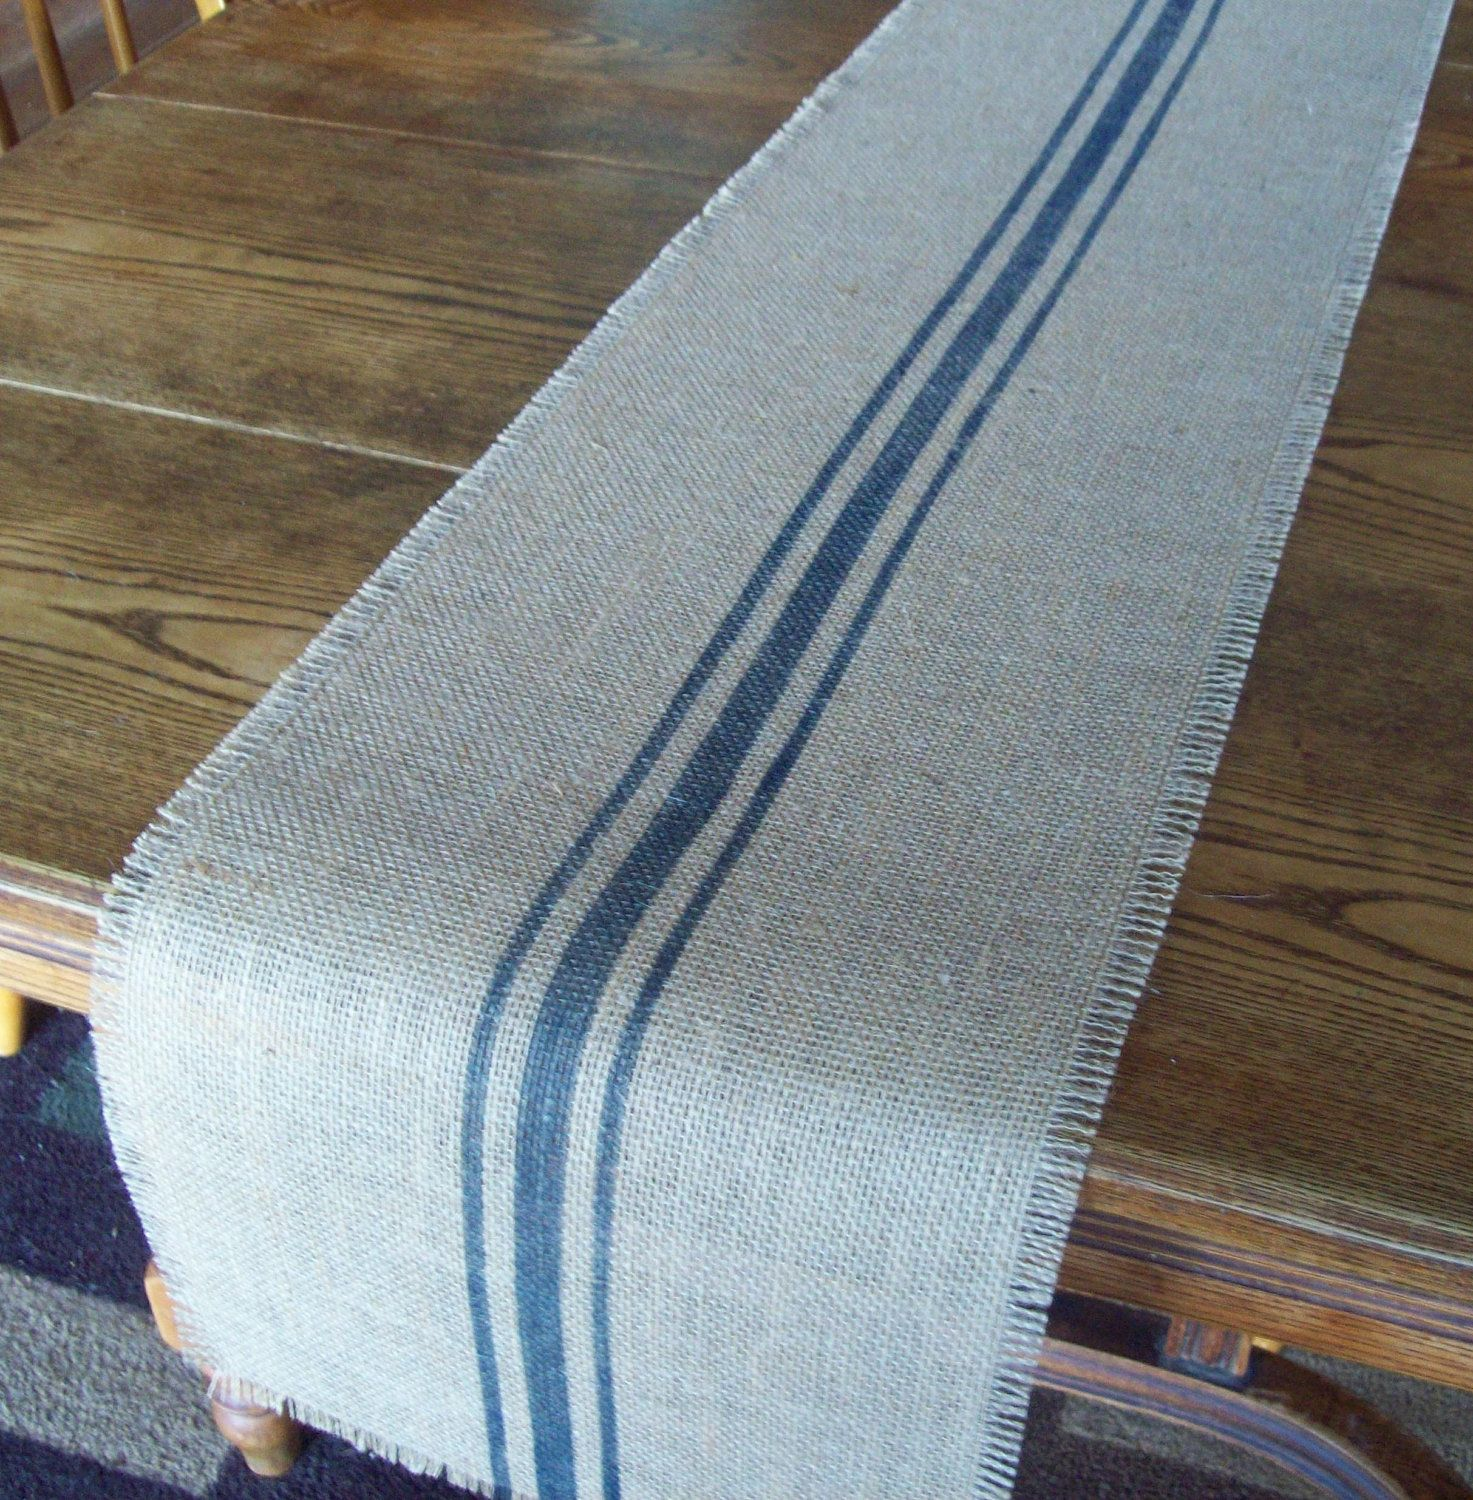 Natural Burlap Table Runner With Hand Painted Grain Sack Style Navy Blue  Stripes 12 X 72